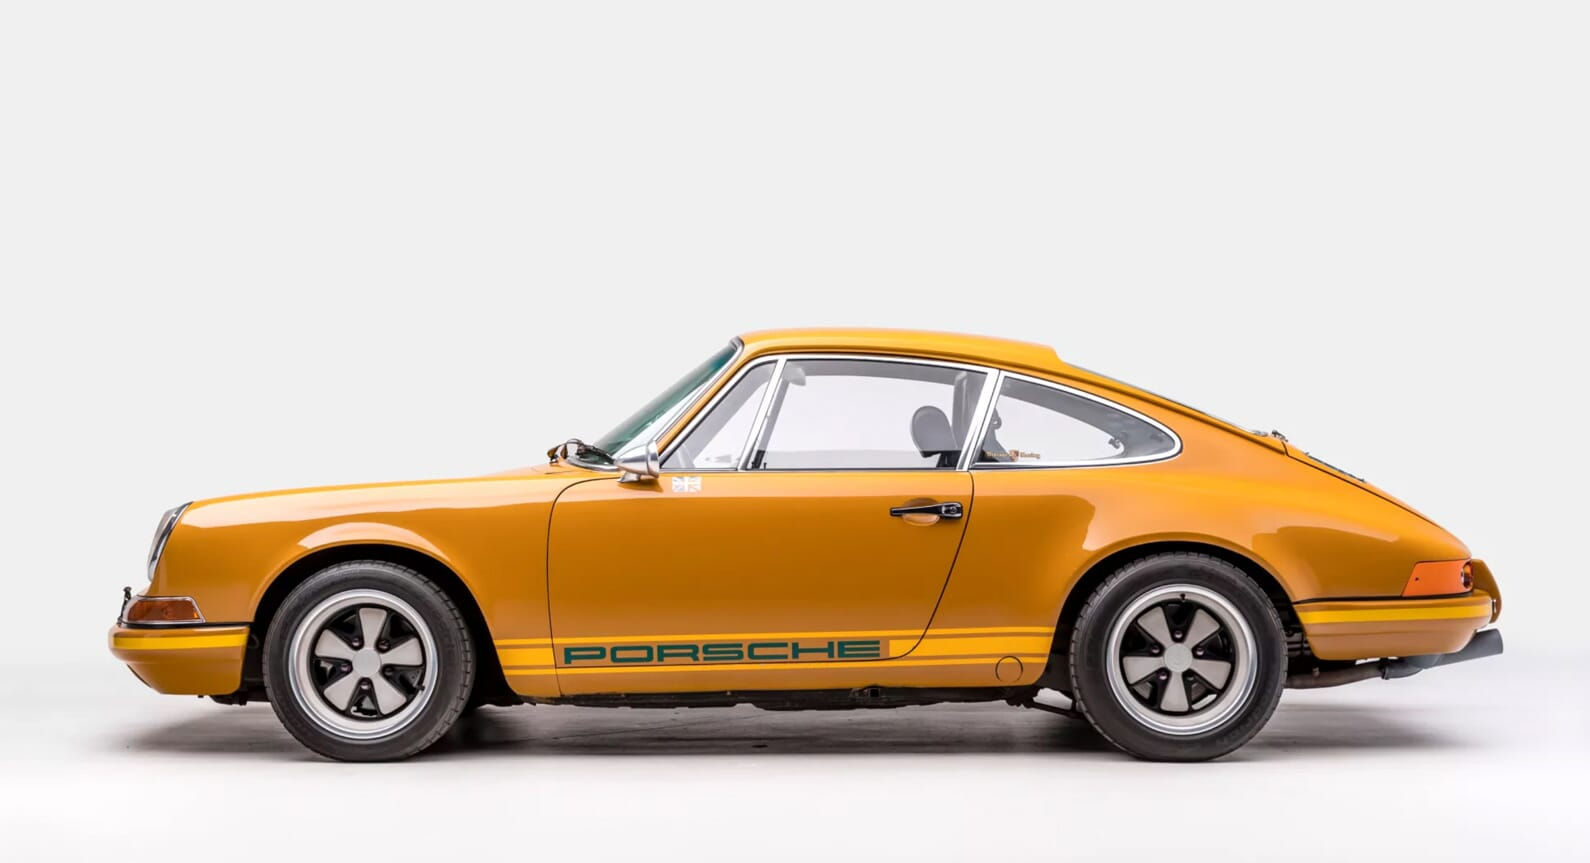 Why You Need To Visit The All-New Petersen Porsche Effect Exhibition